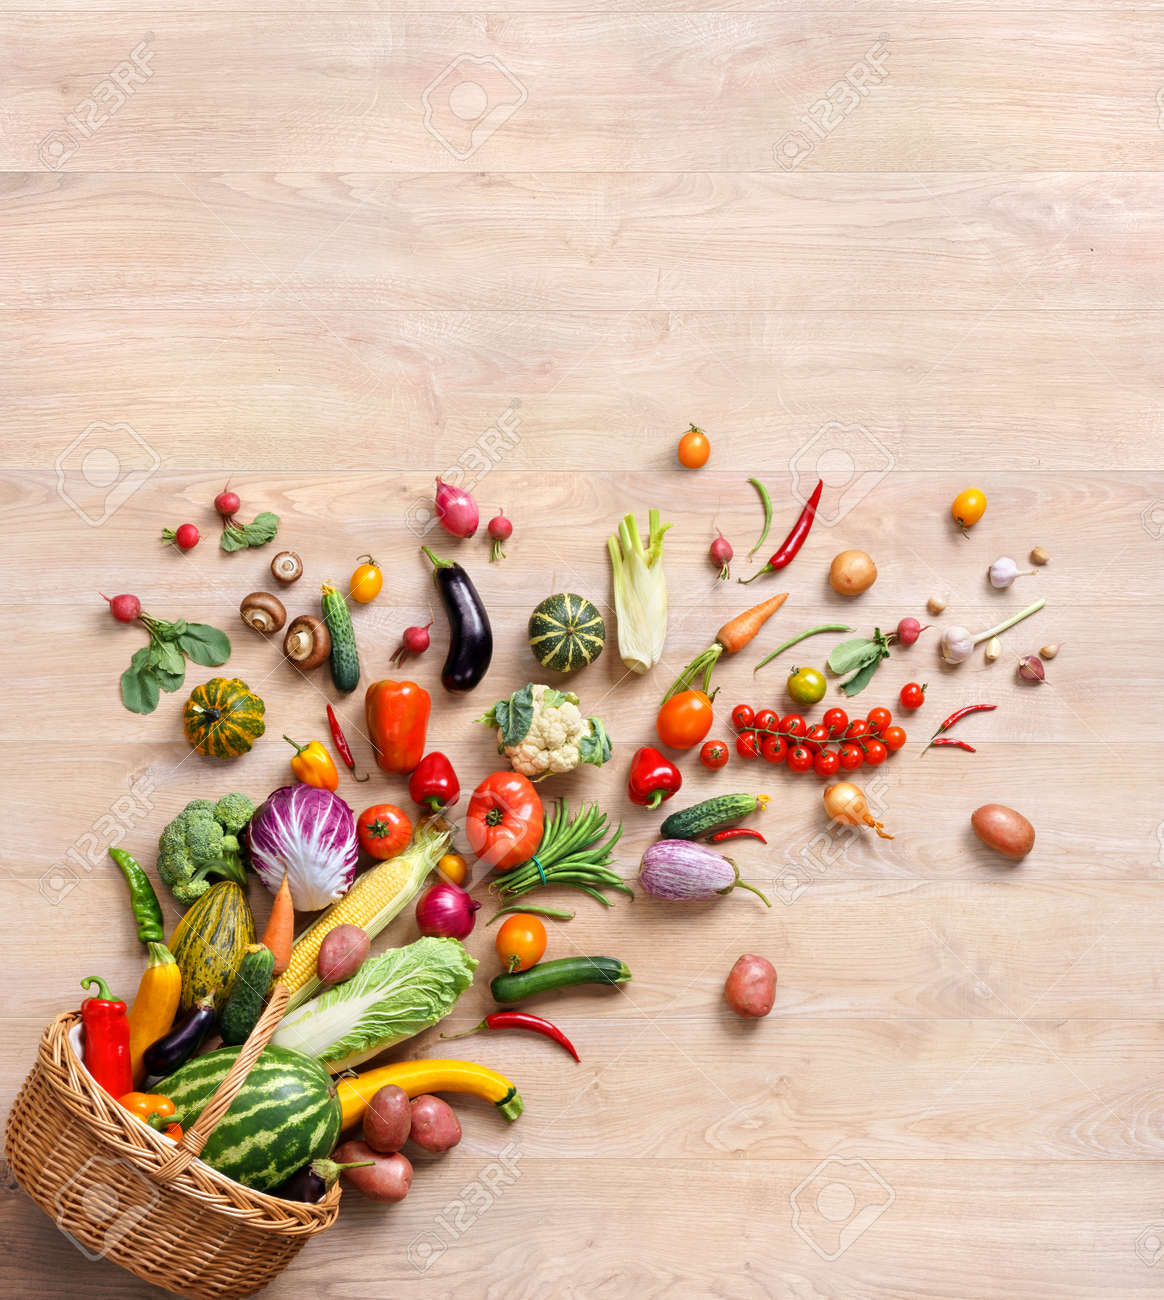 Food background studio photo of different fruits and vegetables - Healthy Food Background Studio Photography Of Different Fruits And Vegetables On Wooden Table Stock Photo